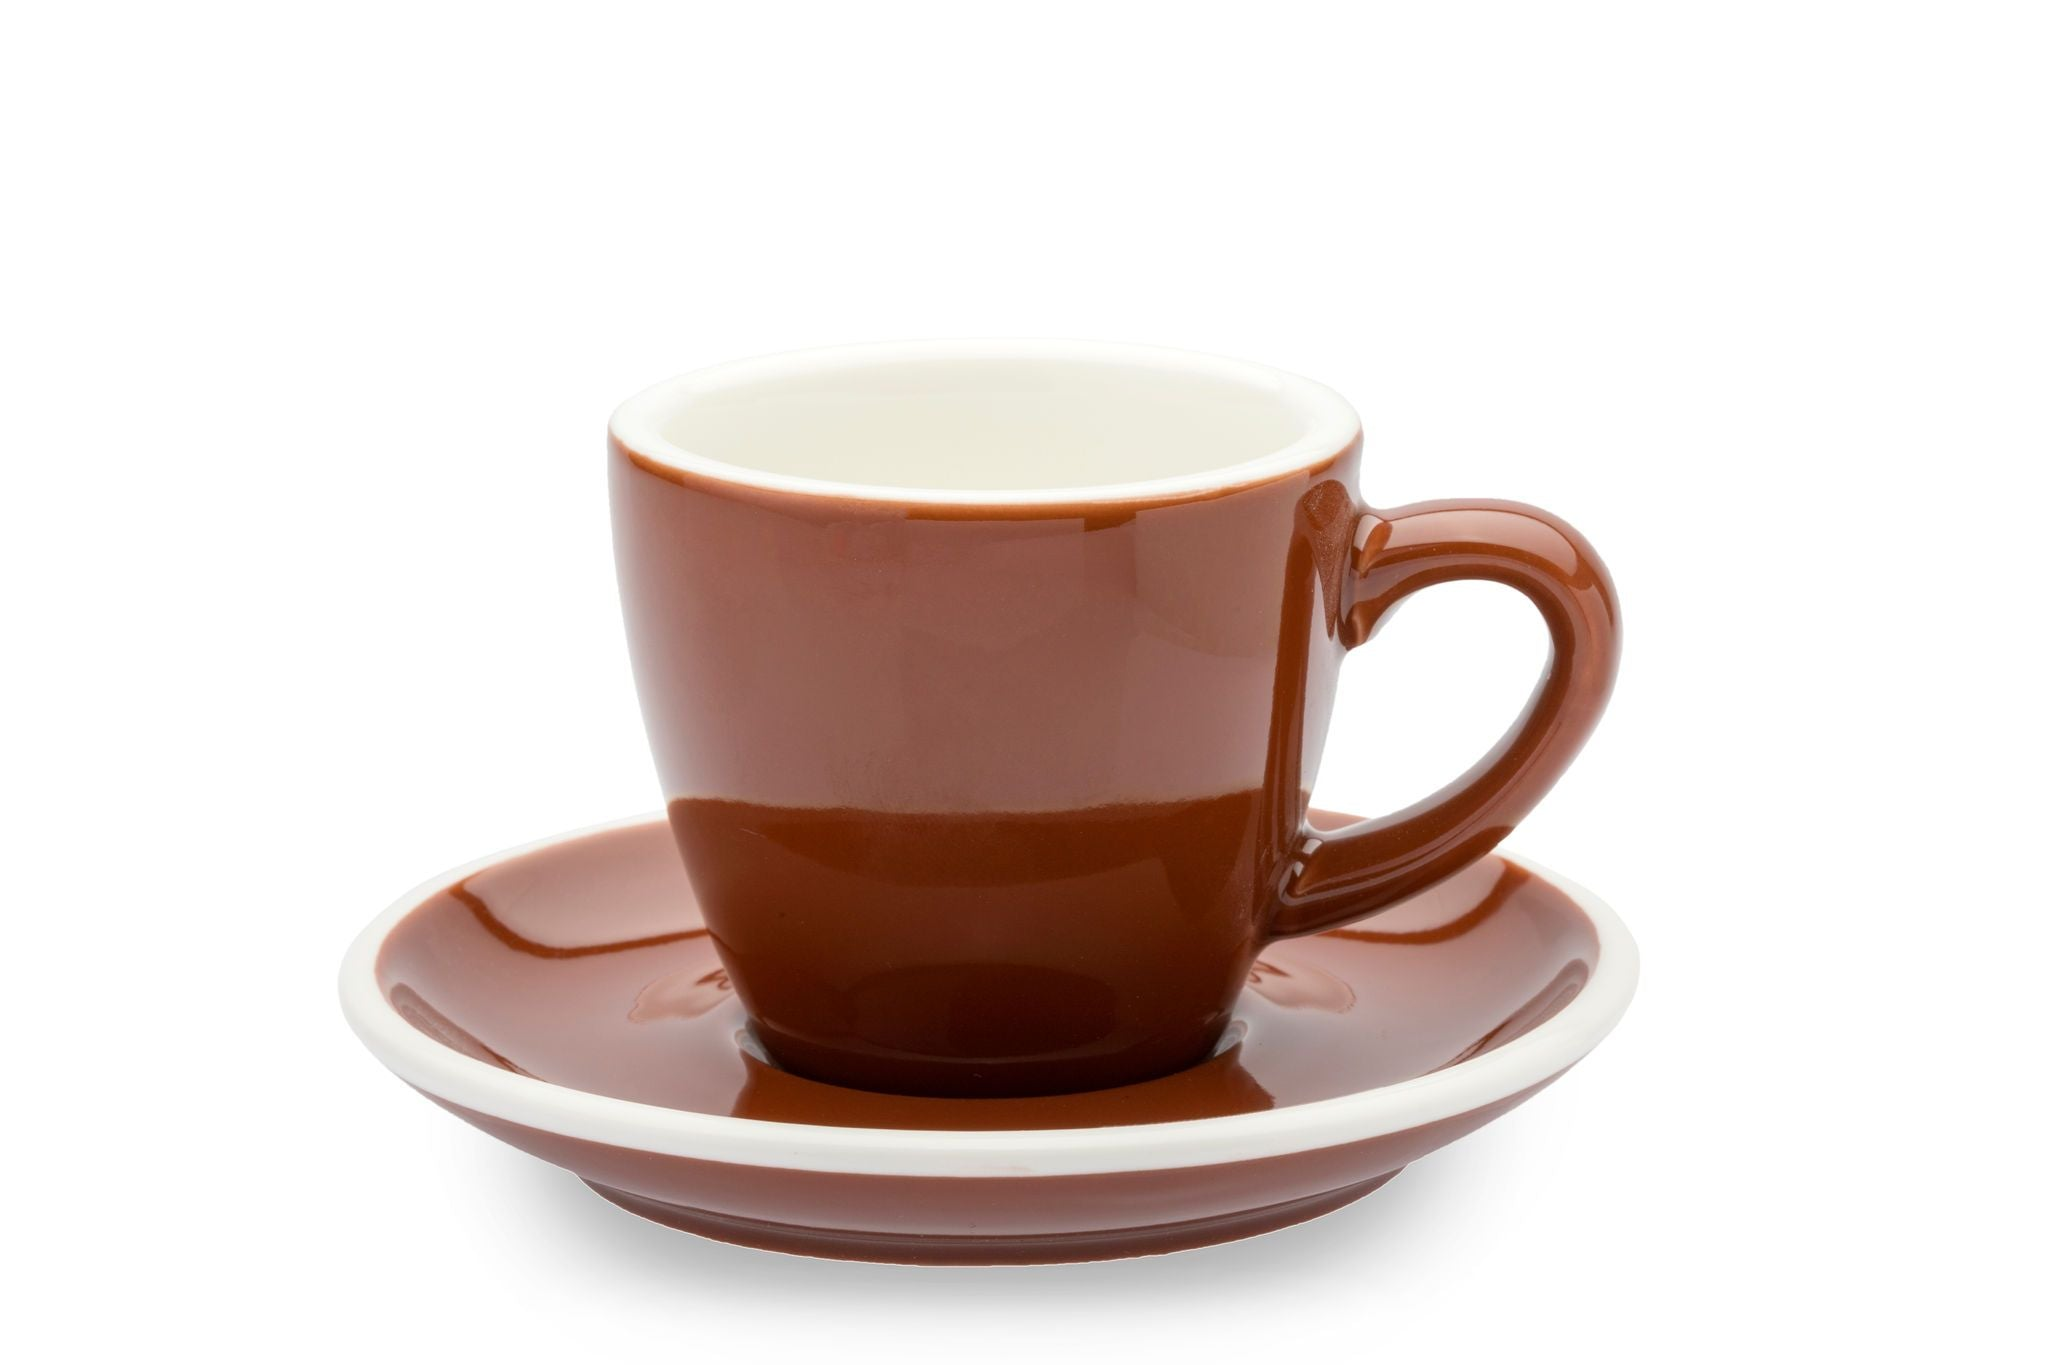 BROWN 3oz Cup & Saucer